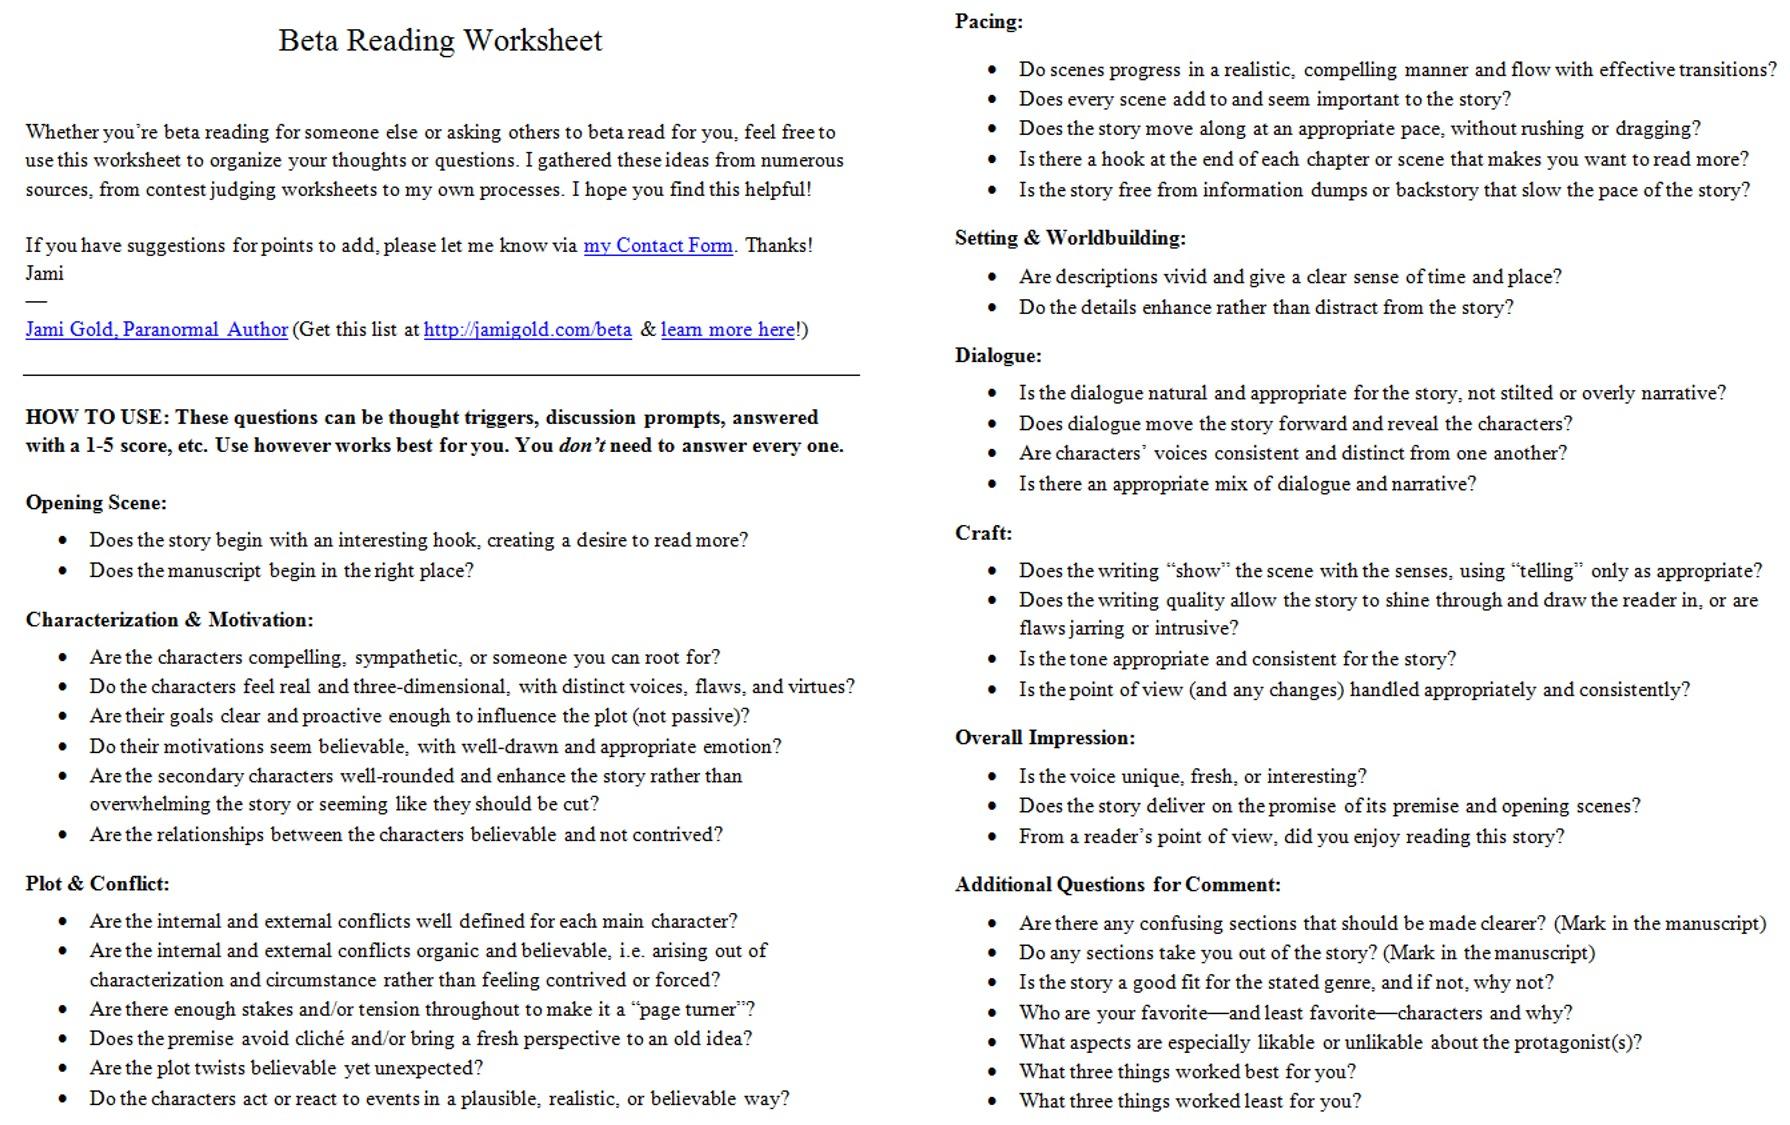 Proatmealus  Unique Worksheets For Writers  Jami Gold Paranormal Author With Foxy Screen Shot Of The Twopage Beta Reading Worksheet With Astounding Alphabet Cursive Handwriting Worksheets Also Probability Tree Diagrams Worksheet In Addition Ough Worksheets And Adjective Vs Adverb Worksheet As Well As Esl Comprehension Worksheets Additionally Worksheets On Plot From Jamigoldcom With Proatmealus  Foxy Worksheets For Writers  Jami Gold Paranormal Author With Astounding Screen Shot Of The Twopage Beta Reading Worksheet And Unique Alphabet Cursive Handwriting Worksheets Also Probability Tree Diagrams Worksheet In Addition Ough Worksheets From Jamigoldcom